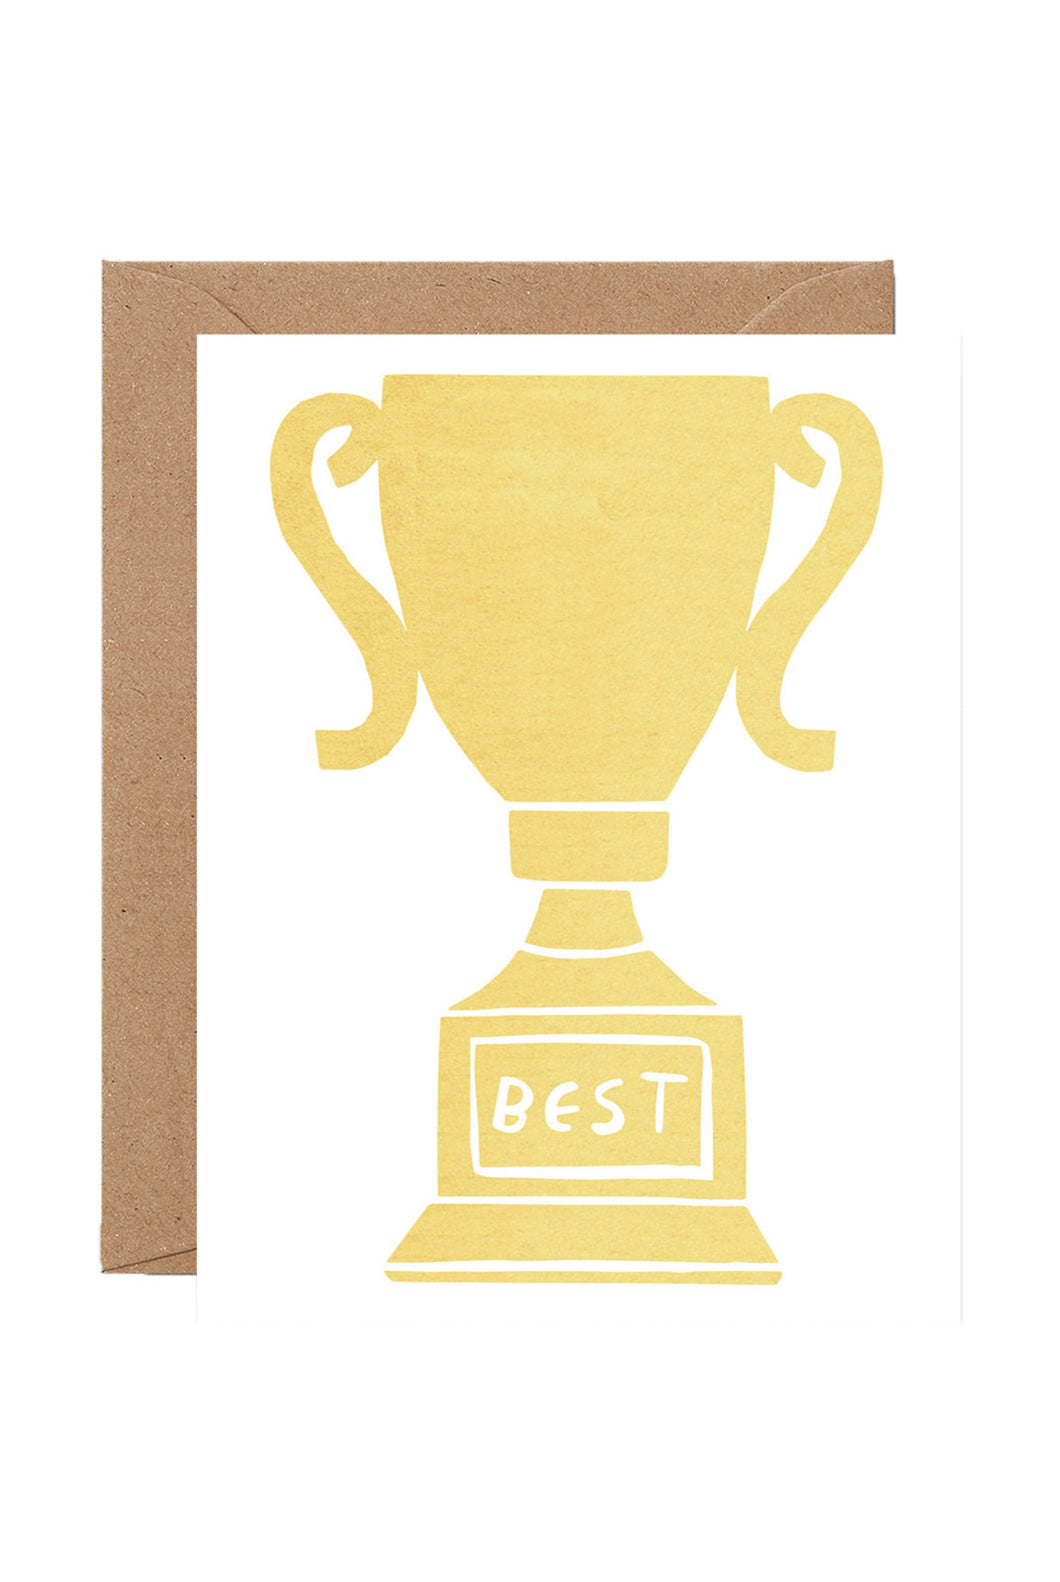 WRAP - Sandi Falconer Collection - Single Card - Best Trophy